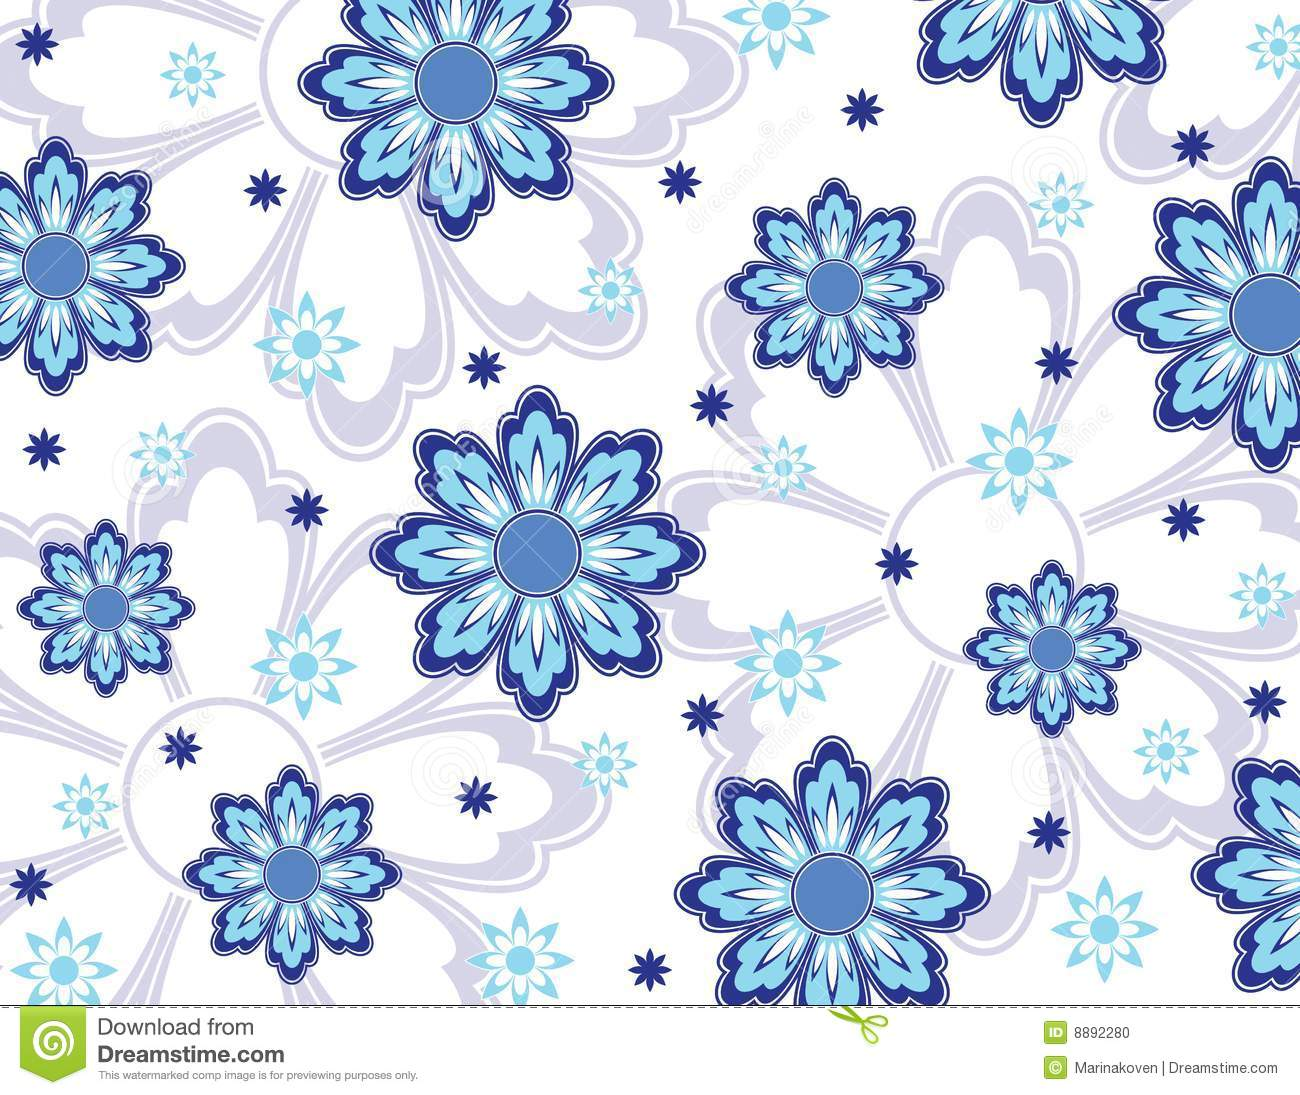 Blue Flowers Wallpaper Stock Photo - Image: 8892280